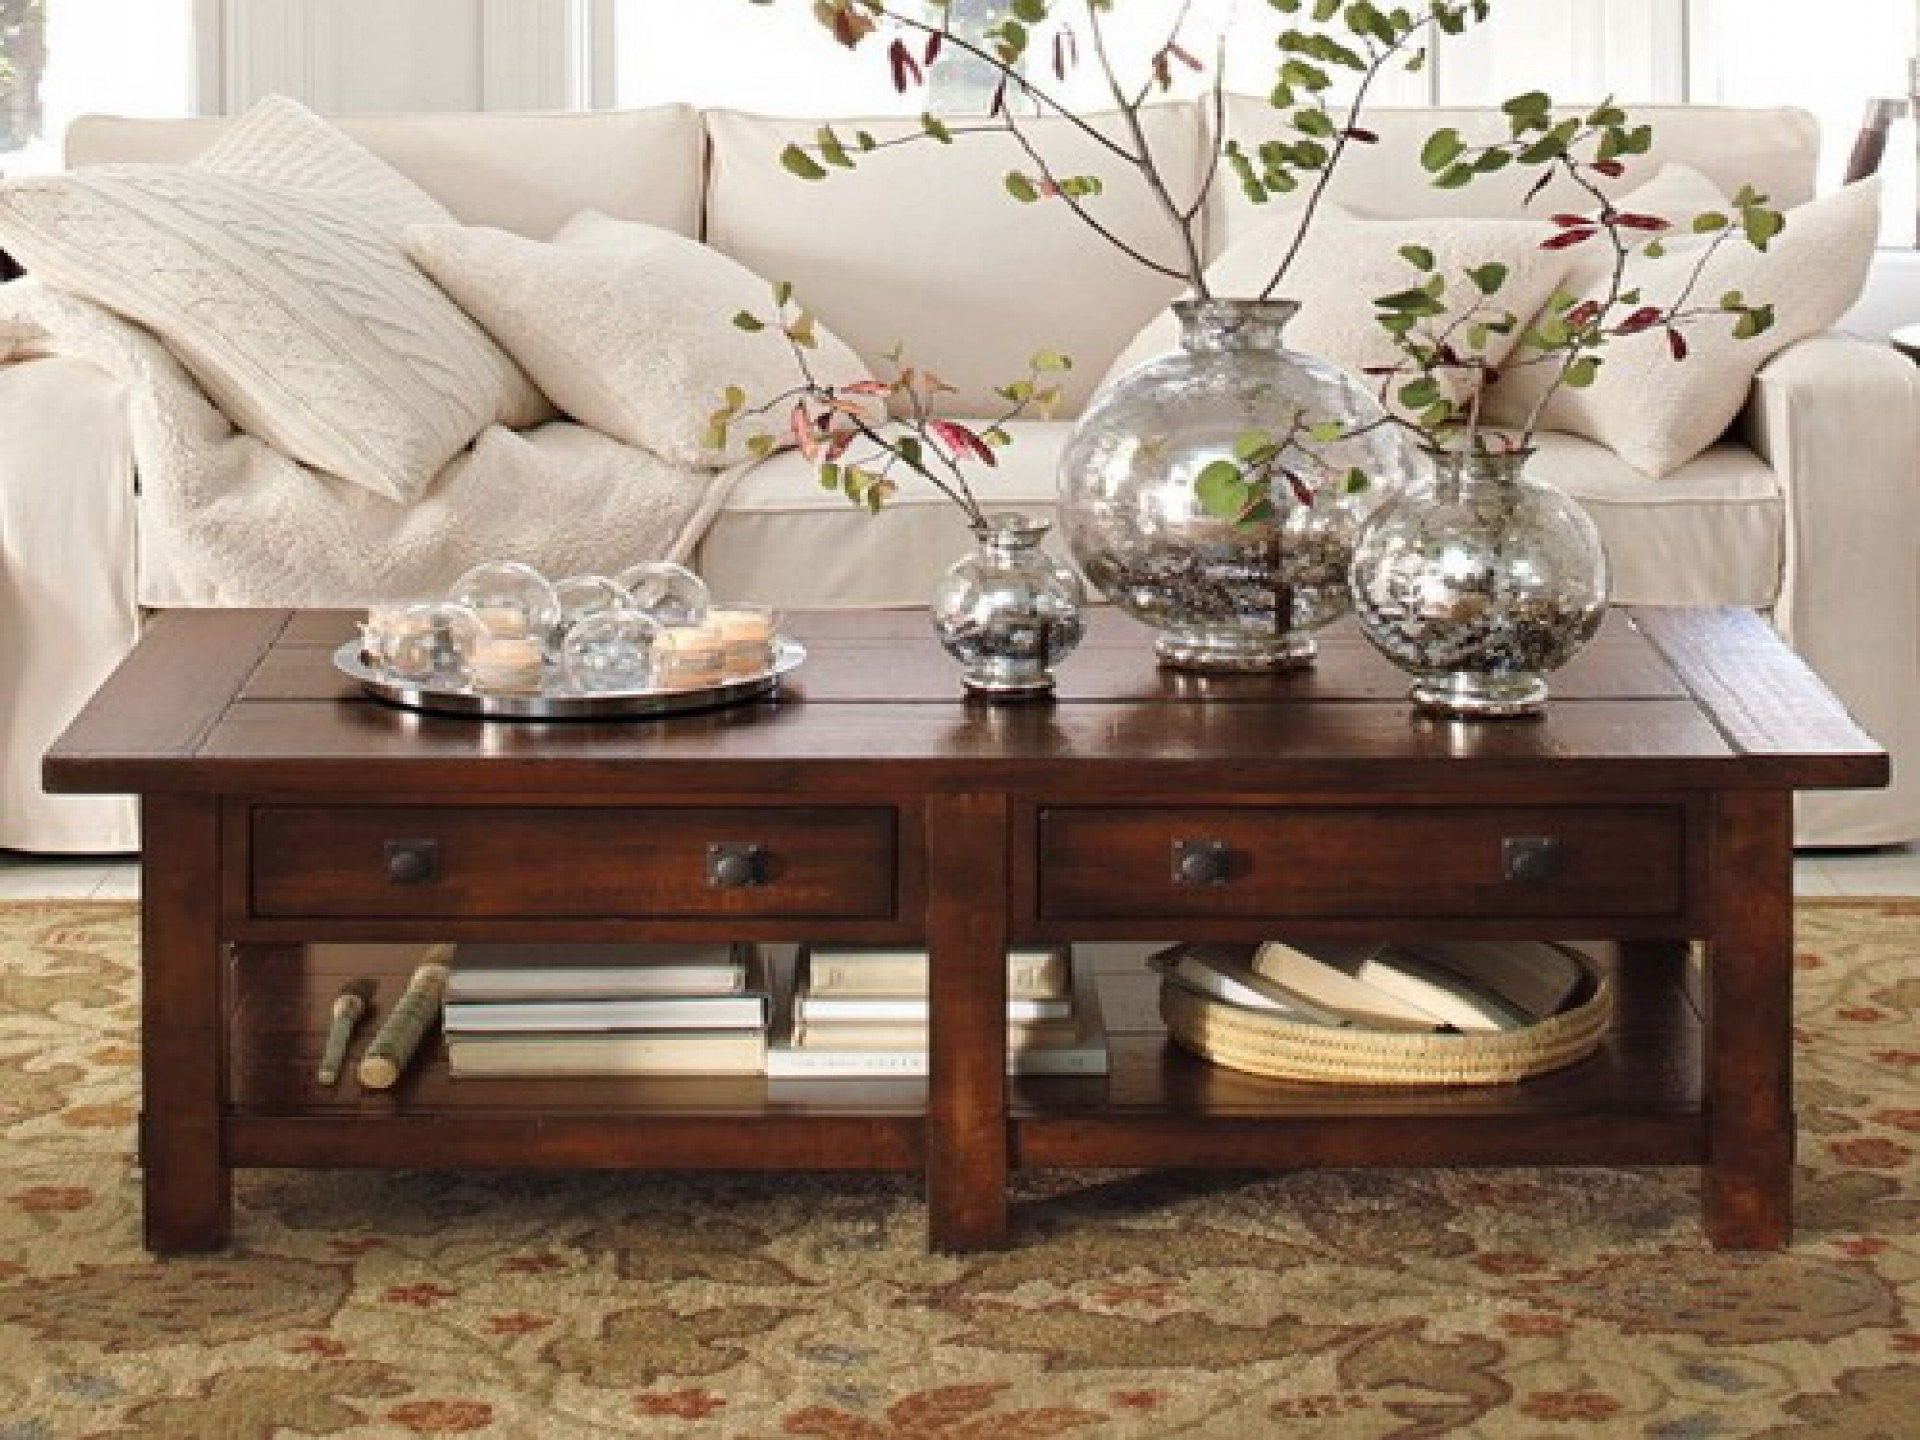 coffee table accessories design images photos pictures. Black Bedroom Furniture Sets. Home Design Ideas